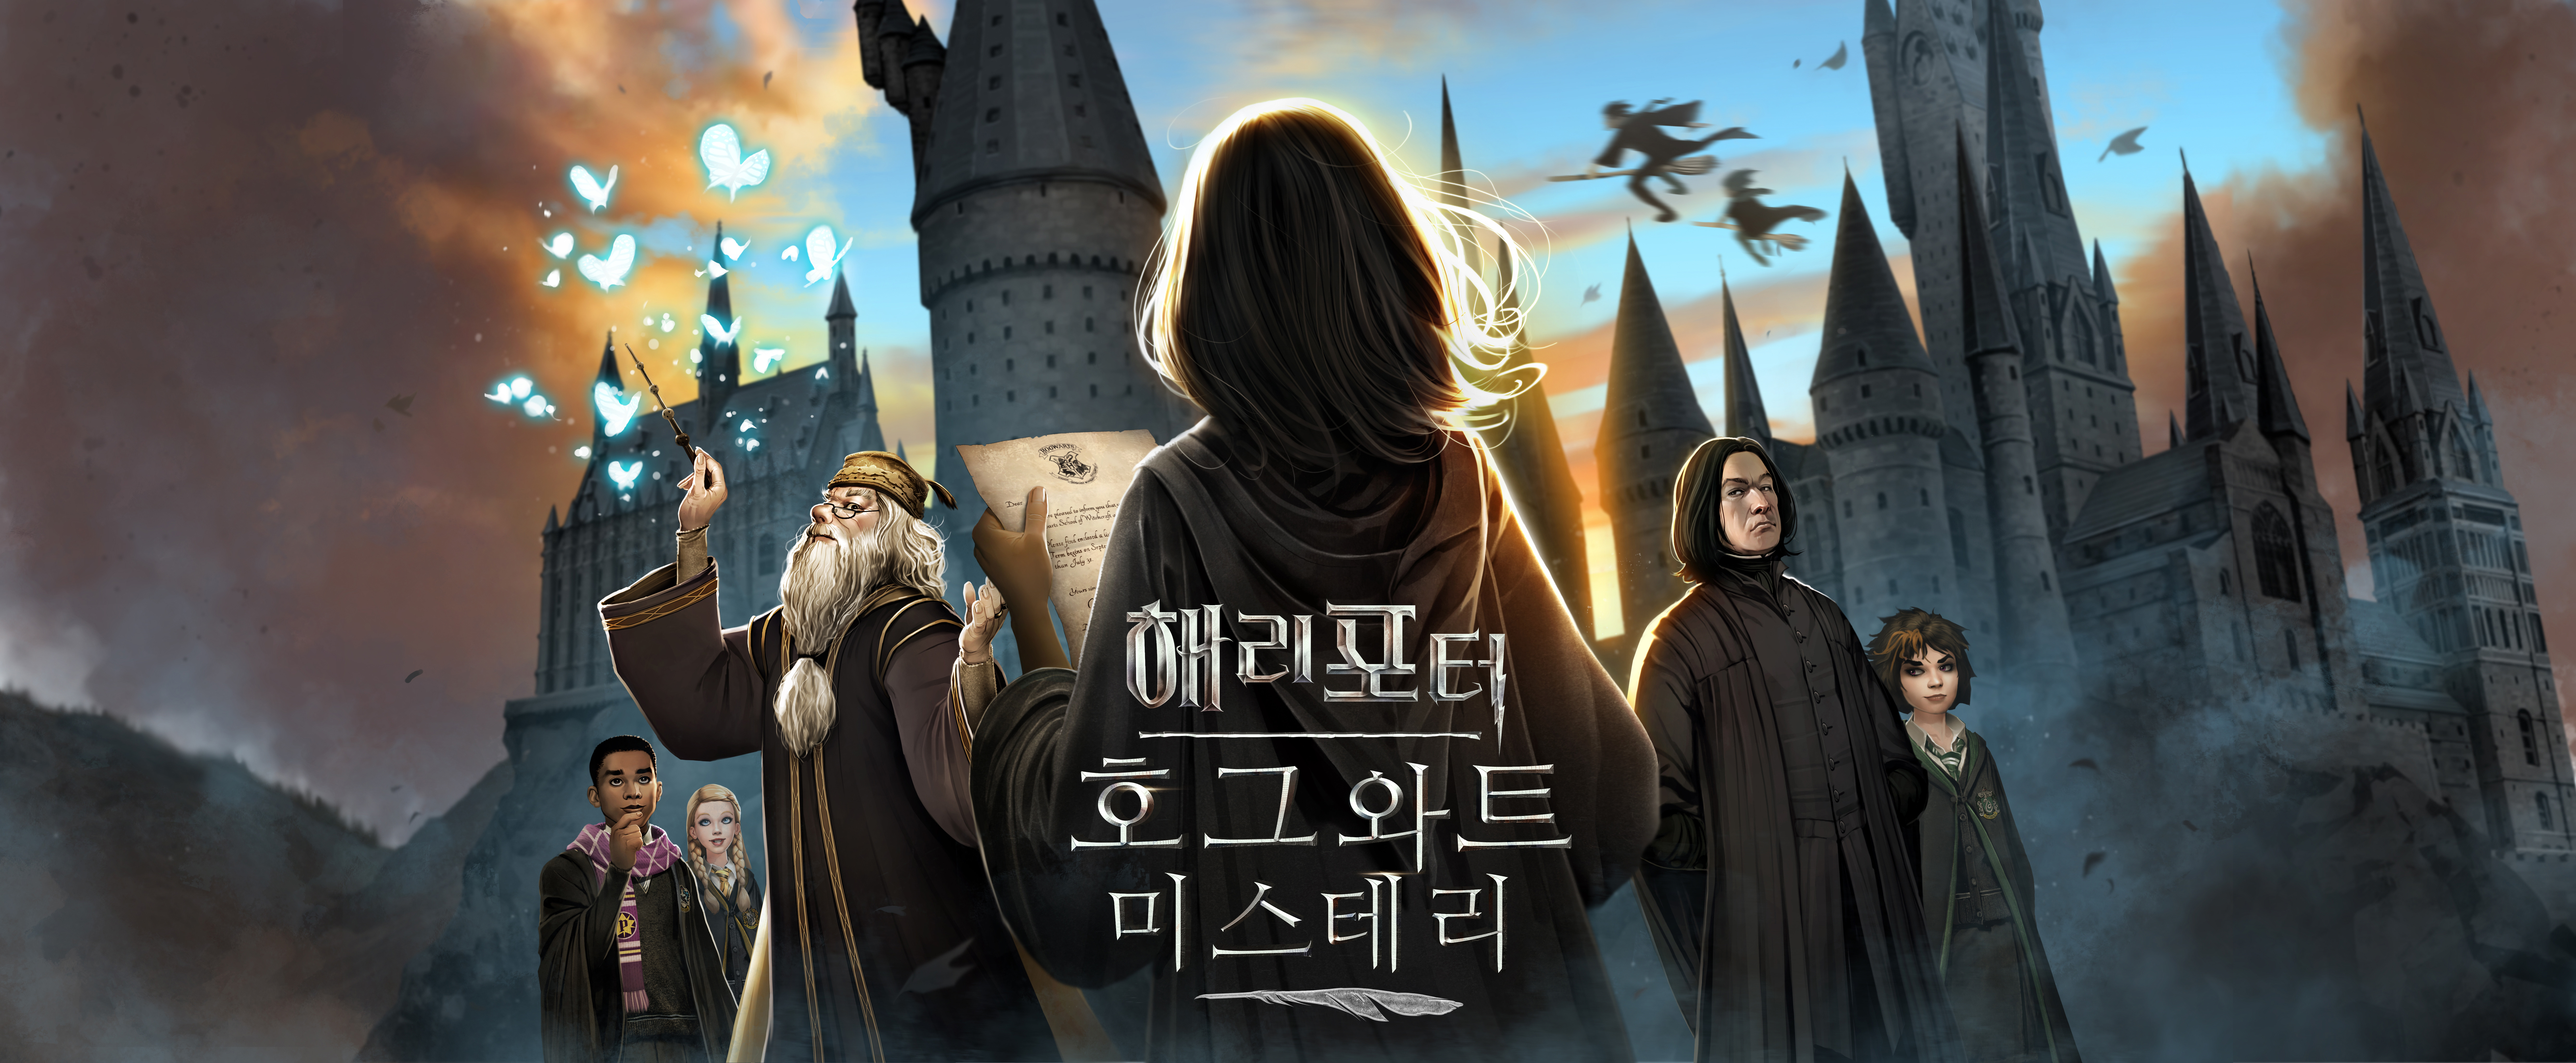 1920x1080 harry potter hogwarts mystery korea key art 10k laptop full hd 1080p hd 4k wallpapers images backgrounds photos and pictures hdqwalls